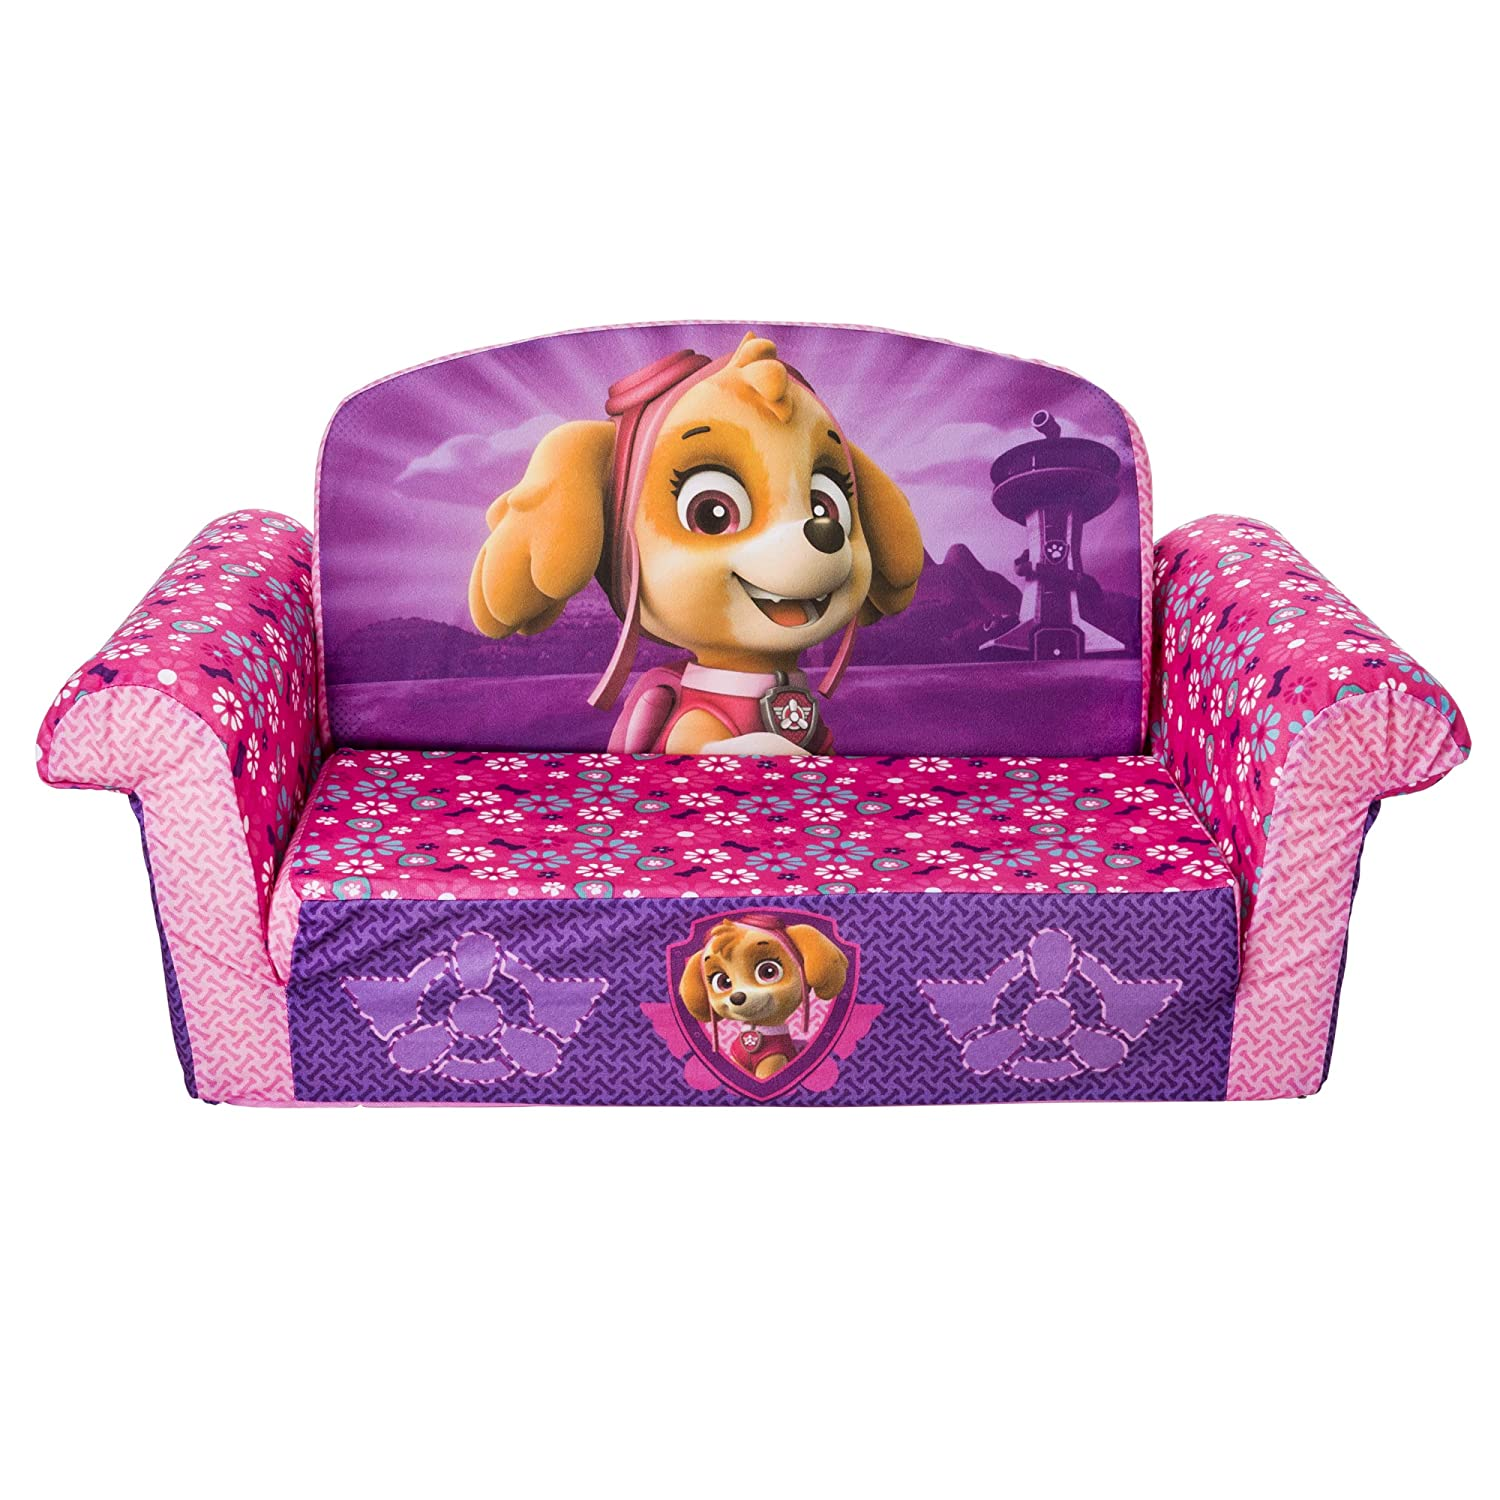 Marshmallow Furniture 20092497 Children's 2 in 1 Flip Open Foam Sofa, Nickelodeon Paw Patrol Toys R Us Exclusive, by Spin Master